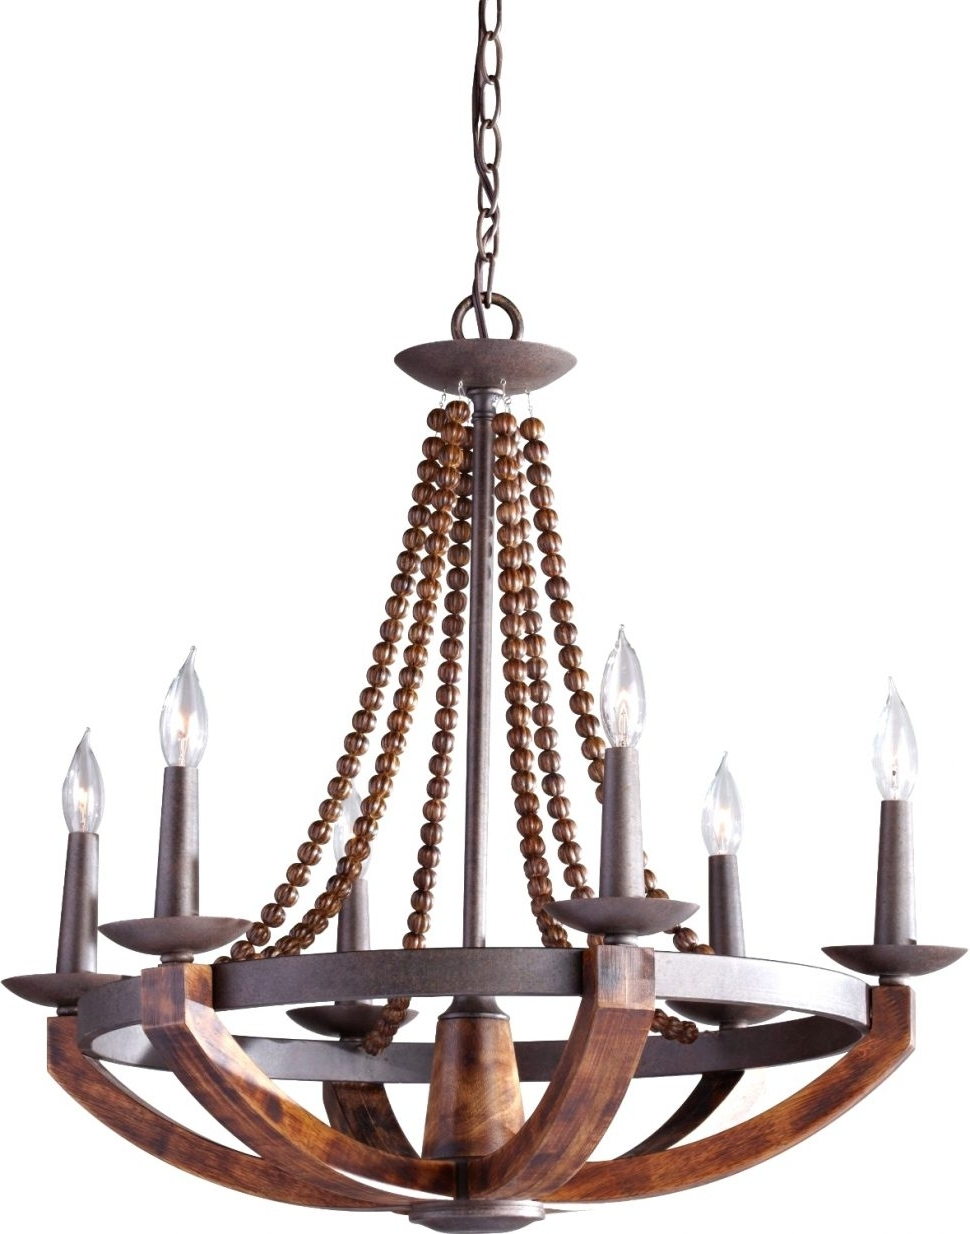 Newest Light : Large Rustic Chandelier Lighting With Best Wood And Metal Within Metal Ball Candle Chandeliers (View 15 of 20)